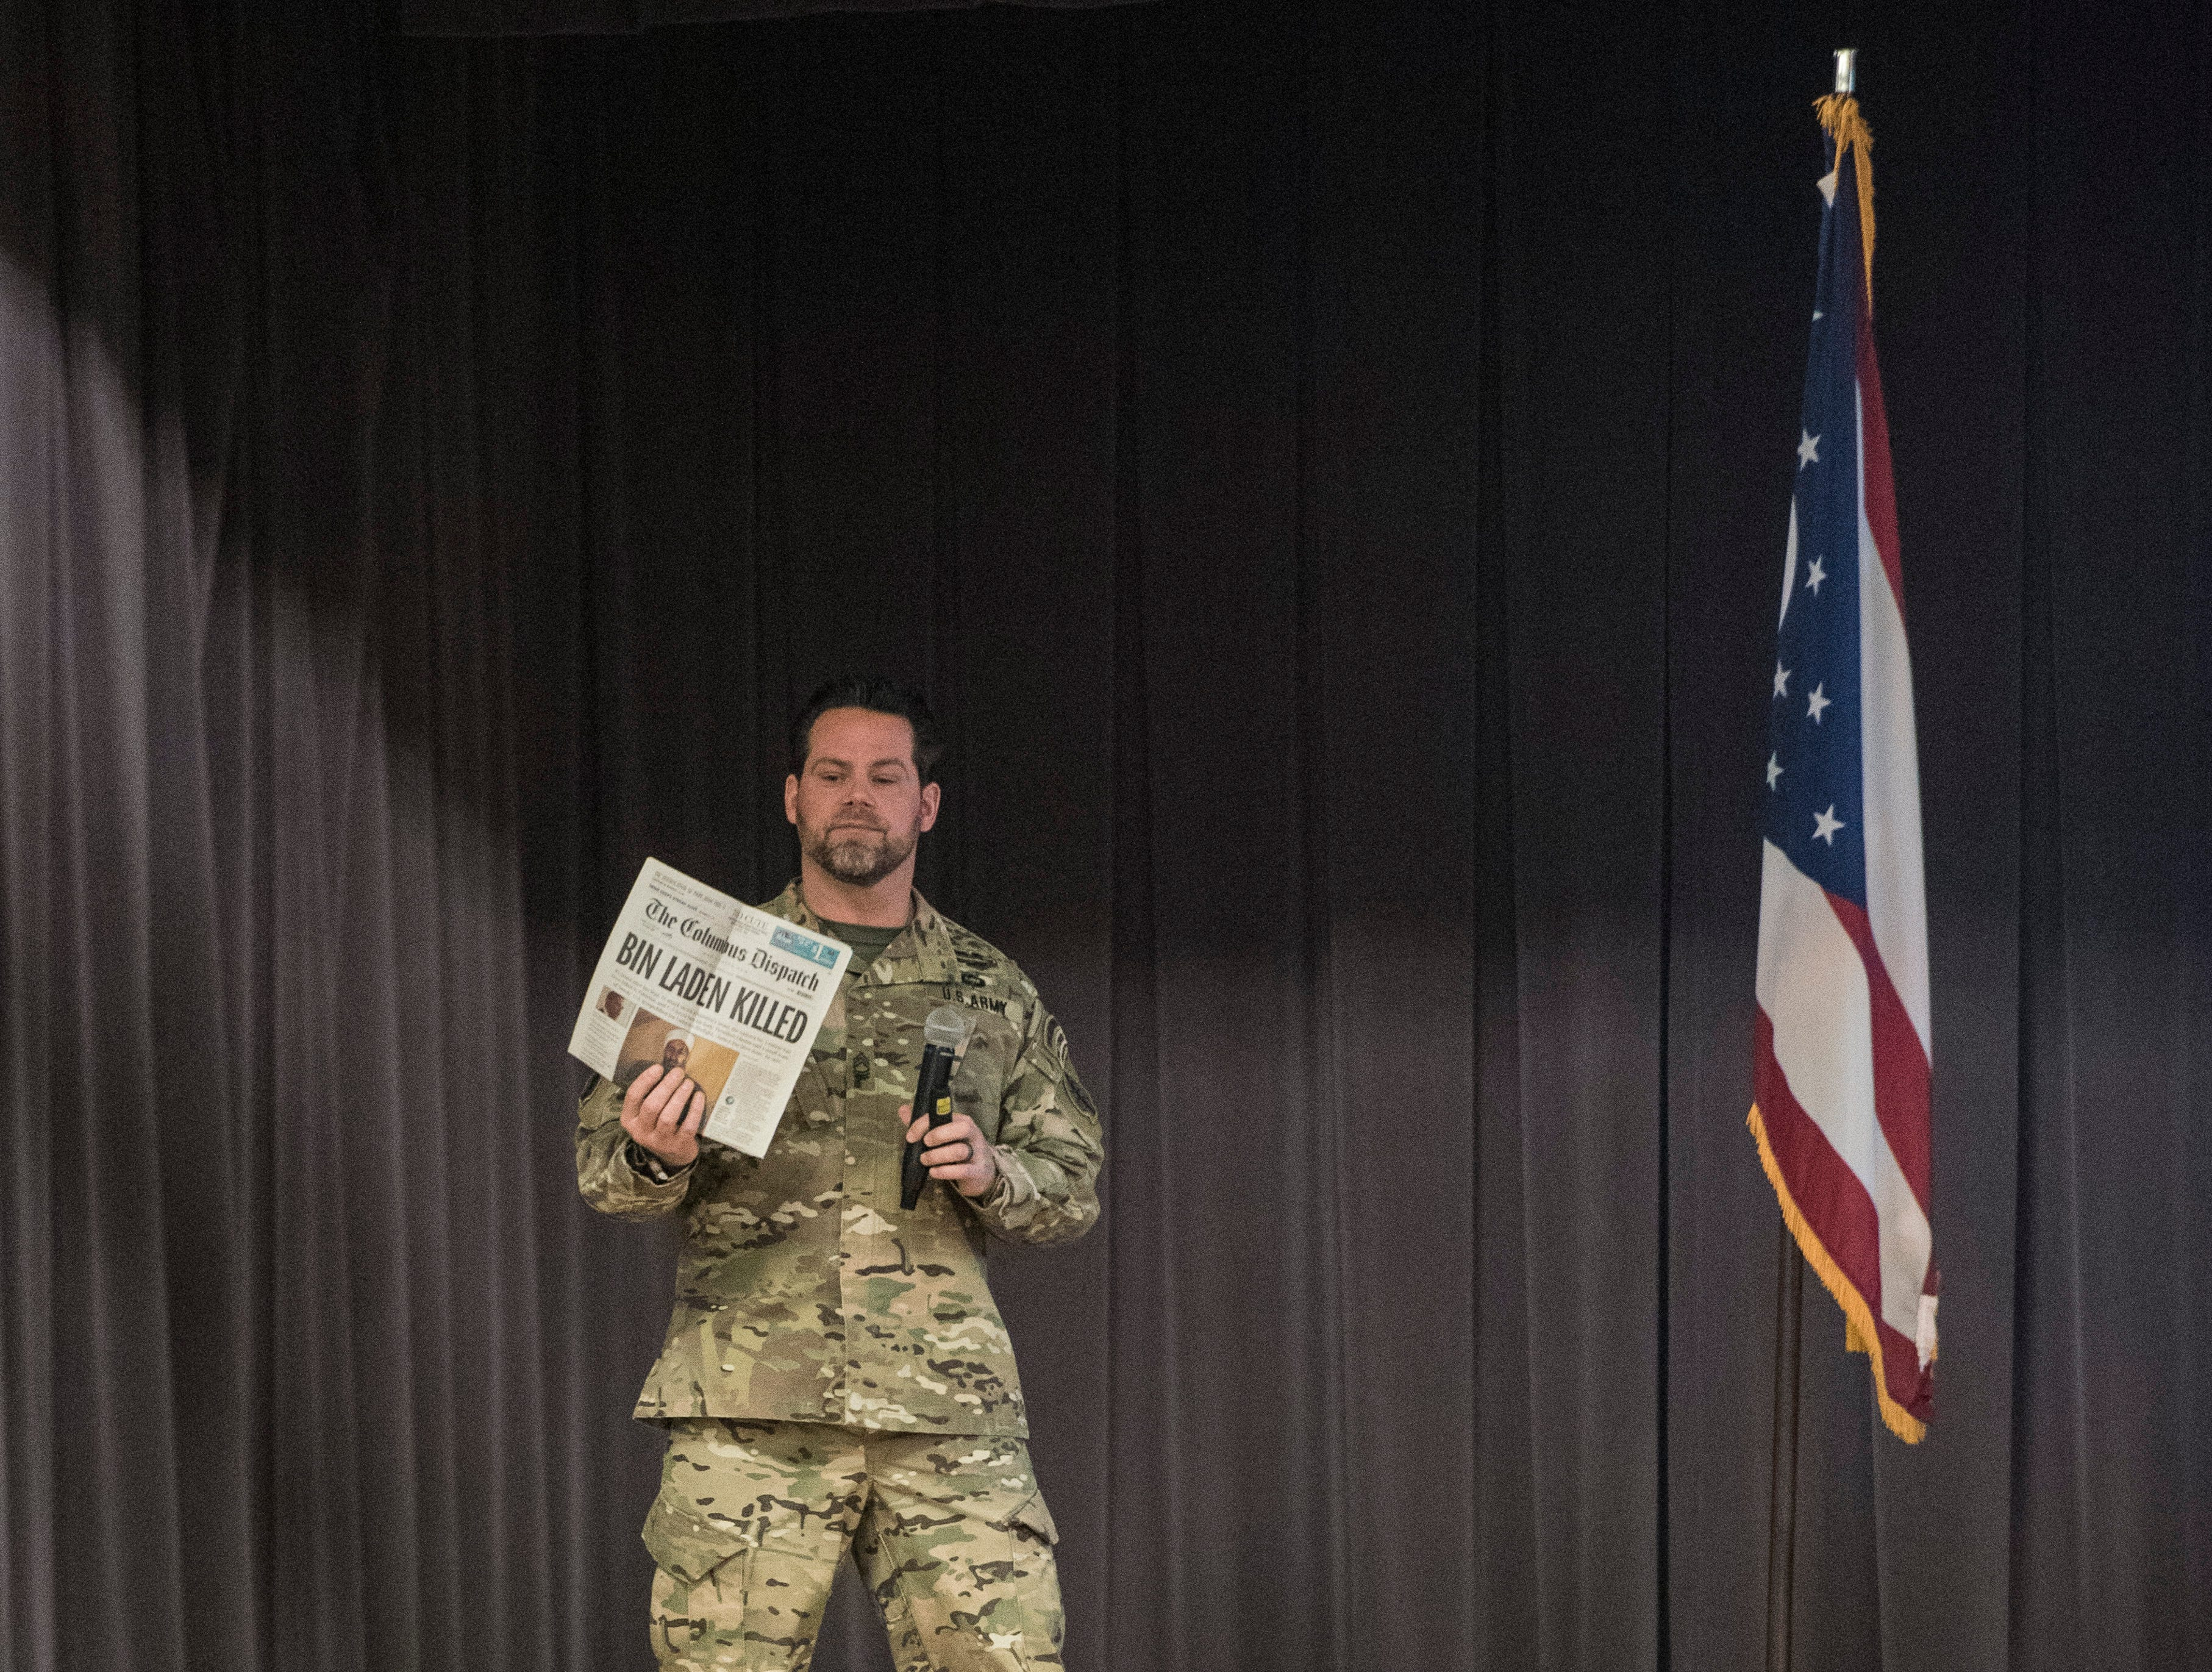 Former Zane Trace graduate Sean Clifton holds up a newspaper headlining the death of Osama bin Laden and what it meant to him and others in the military.